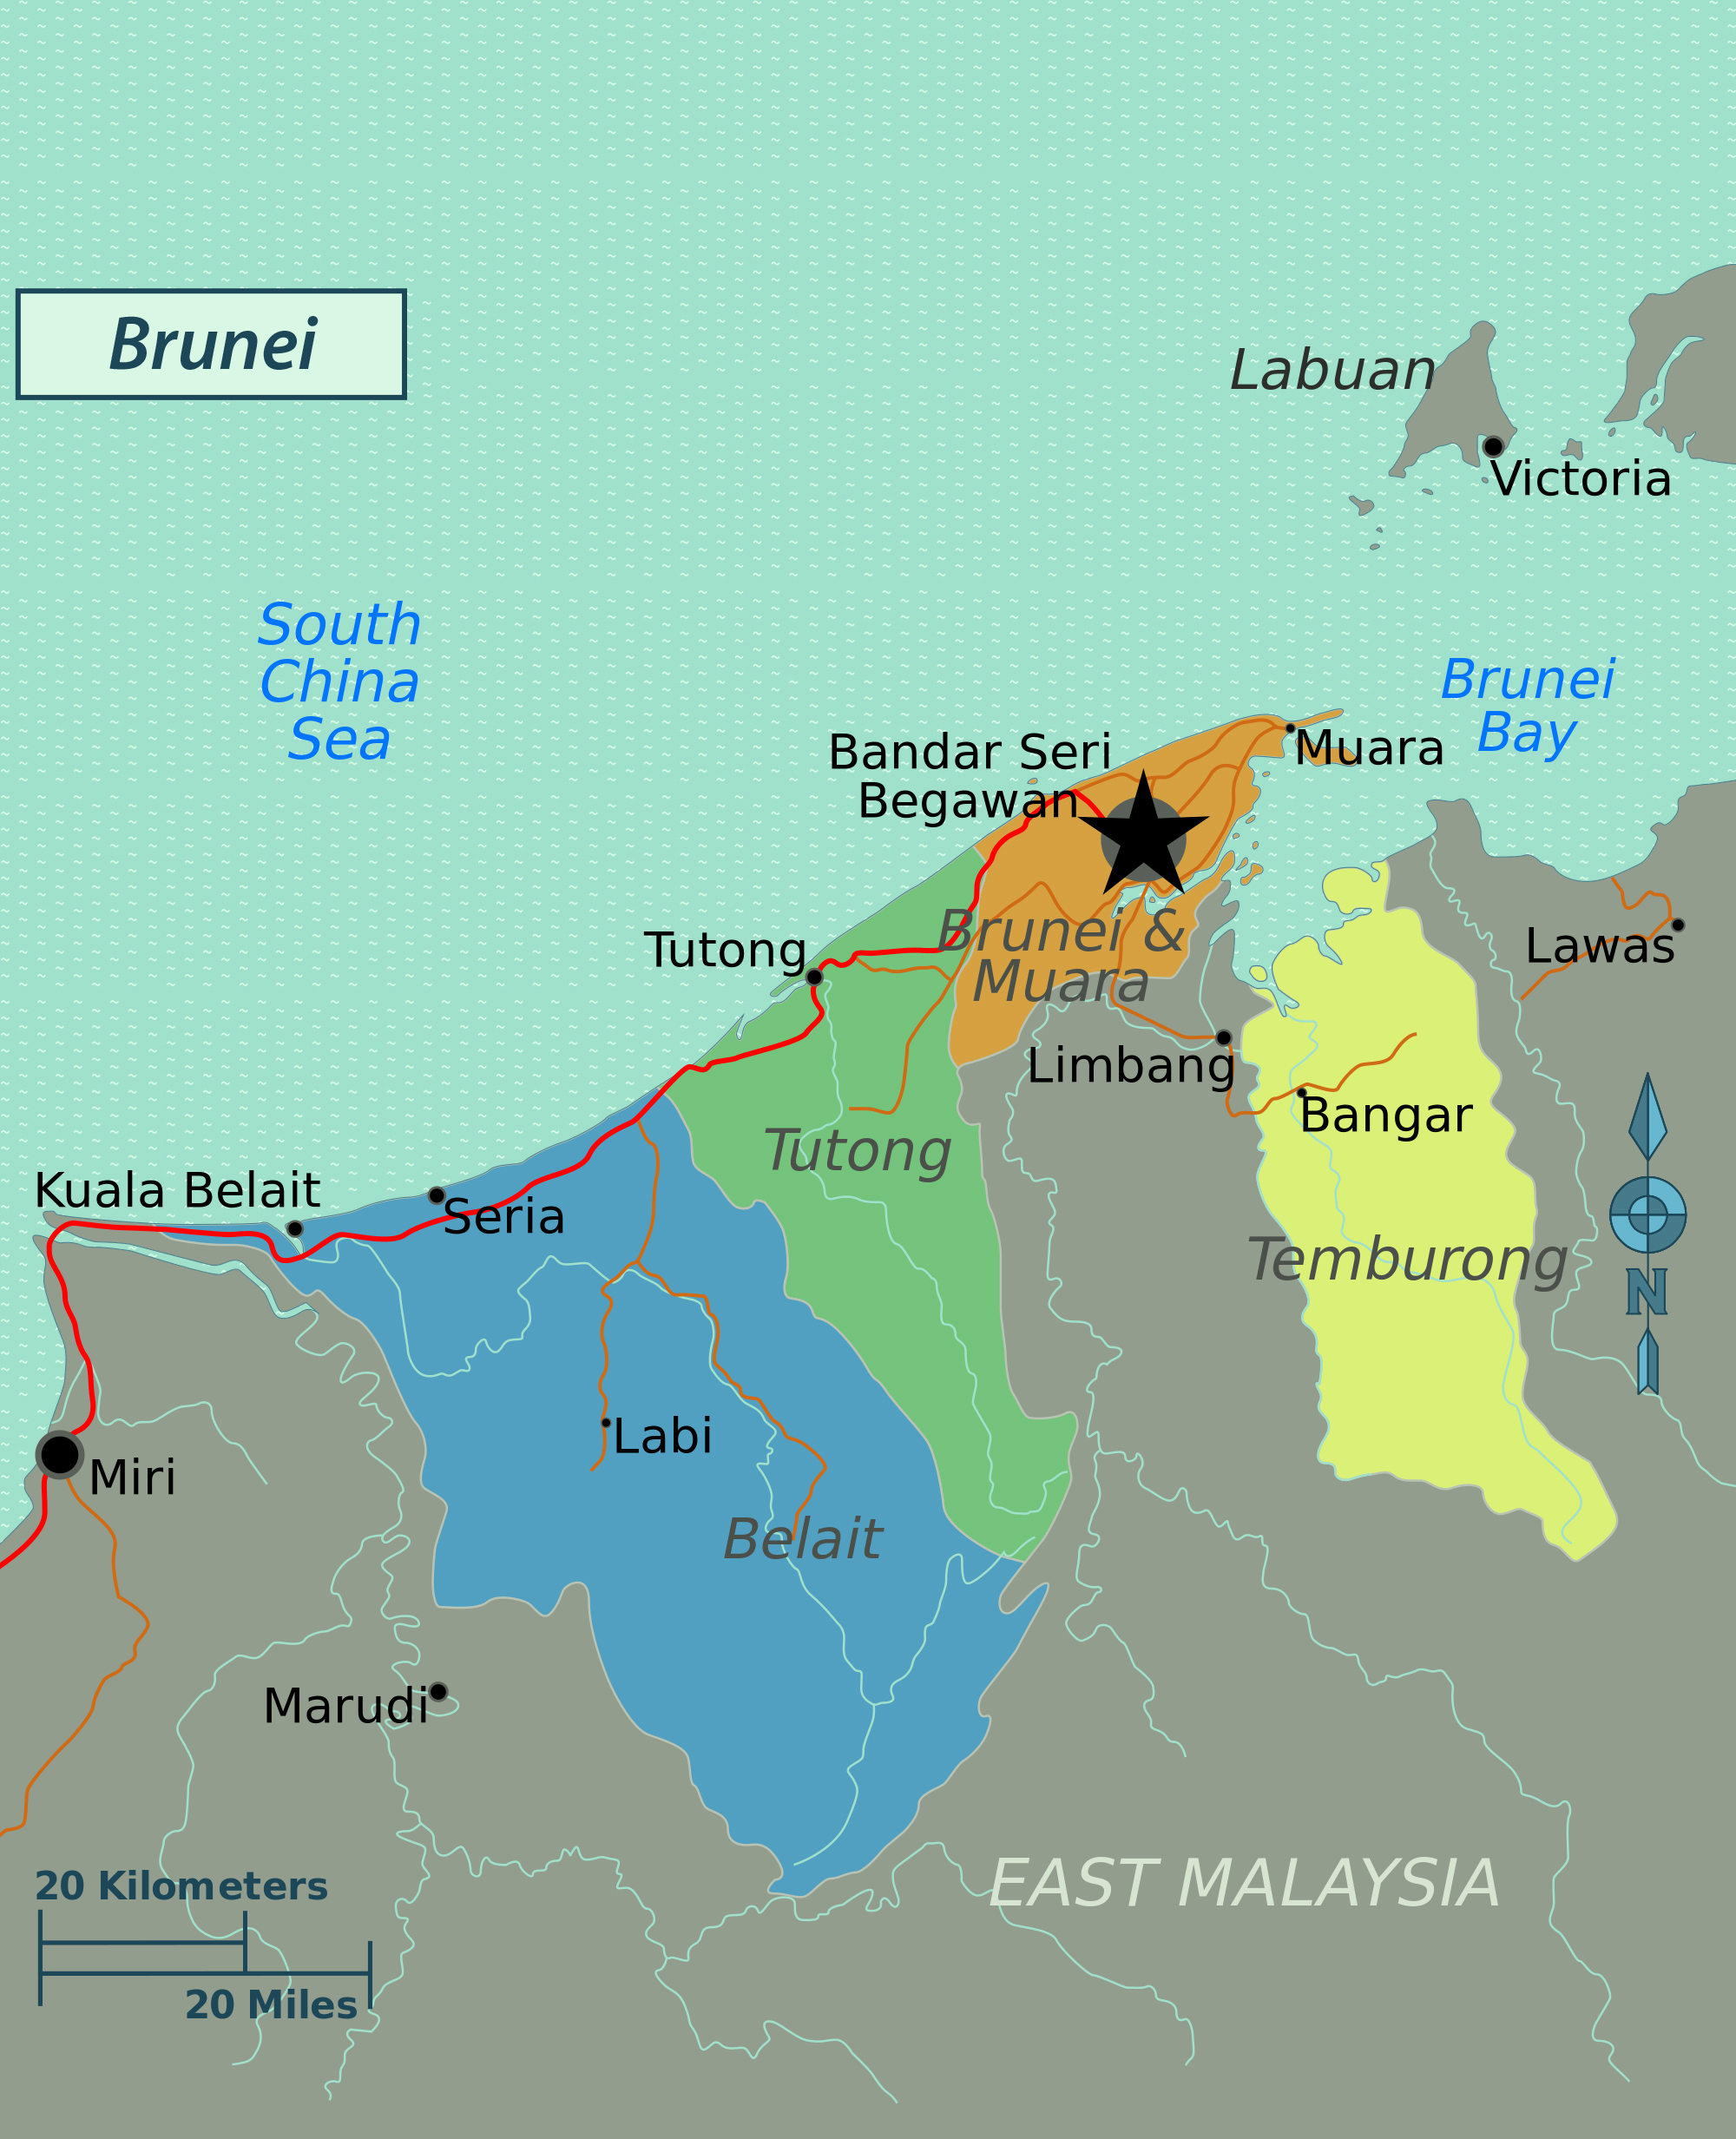 Maps Of Brunei Detailed Map Of Brunei In English Tourist Map Of Brunei Road Map Of Brunei Political Administrative Relief Physical Map Of Brunei